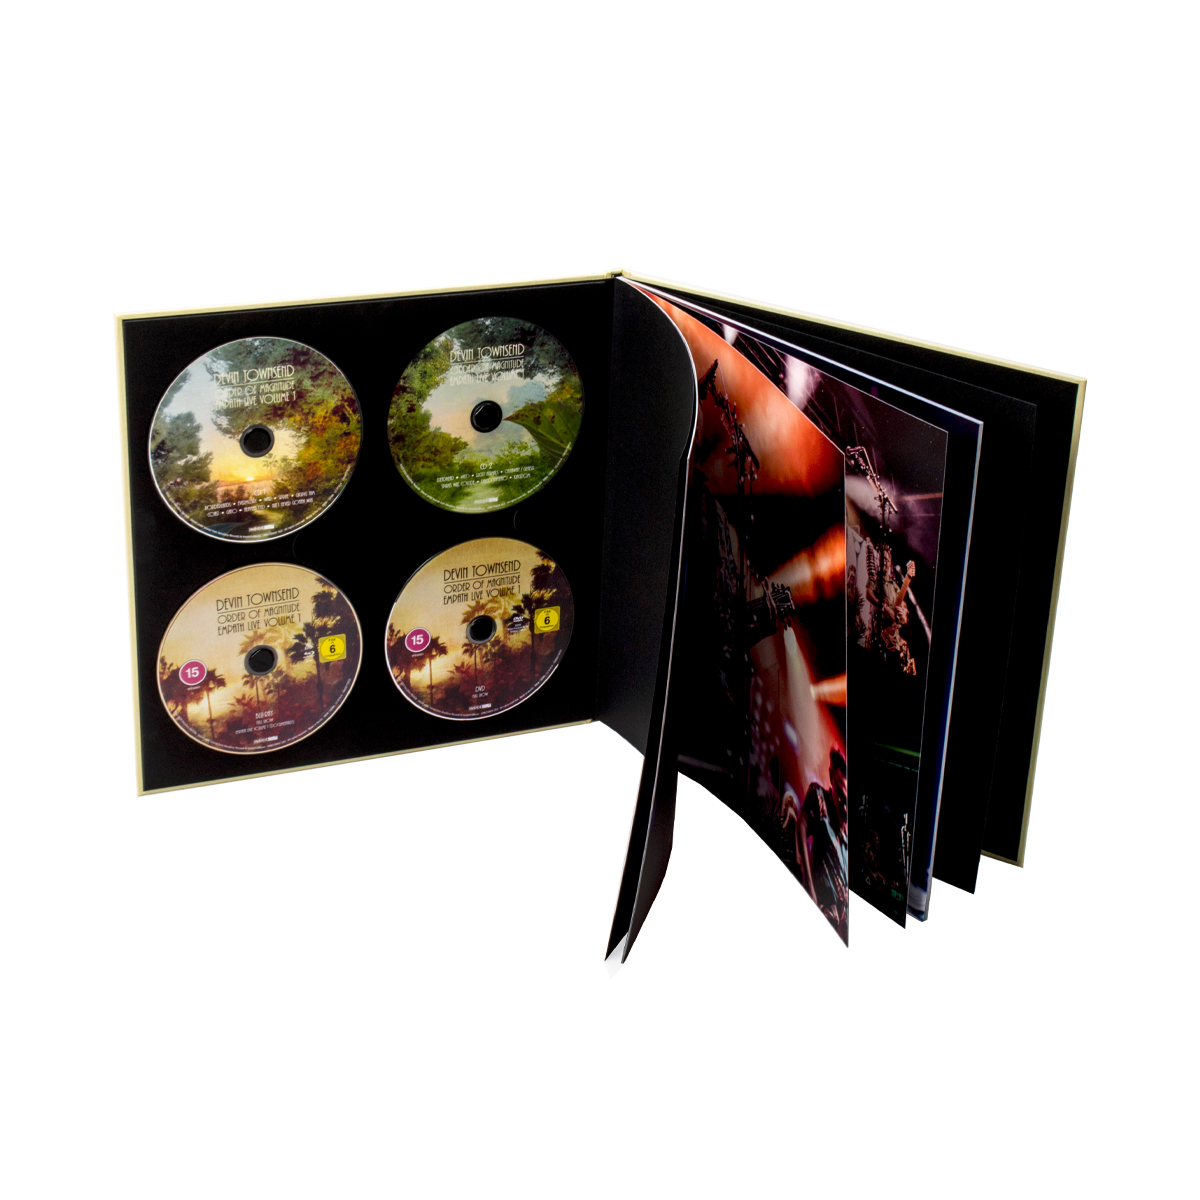 Devin Townsend - Order Of Magnitude - Empath Live Volume 1 Ltd. Deluxe 2 CD & Blu-ray & DVD Artbook